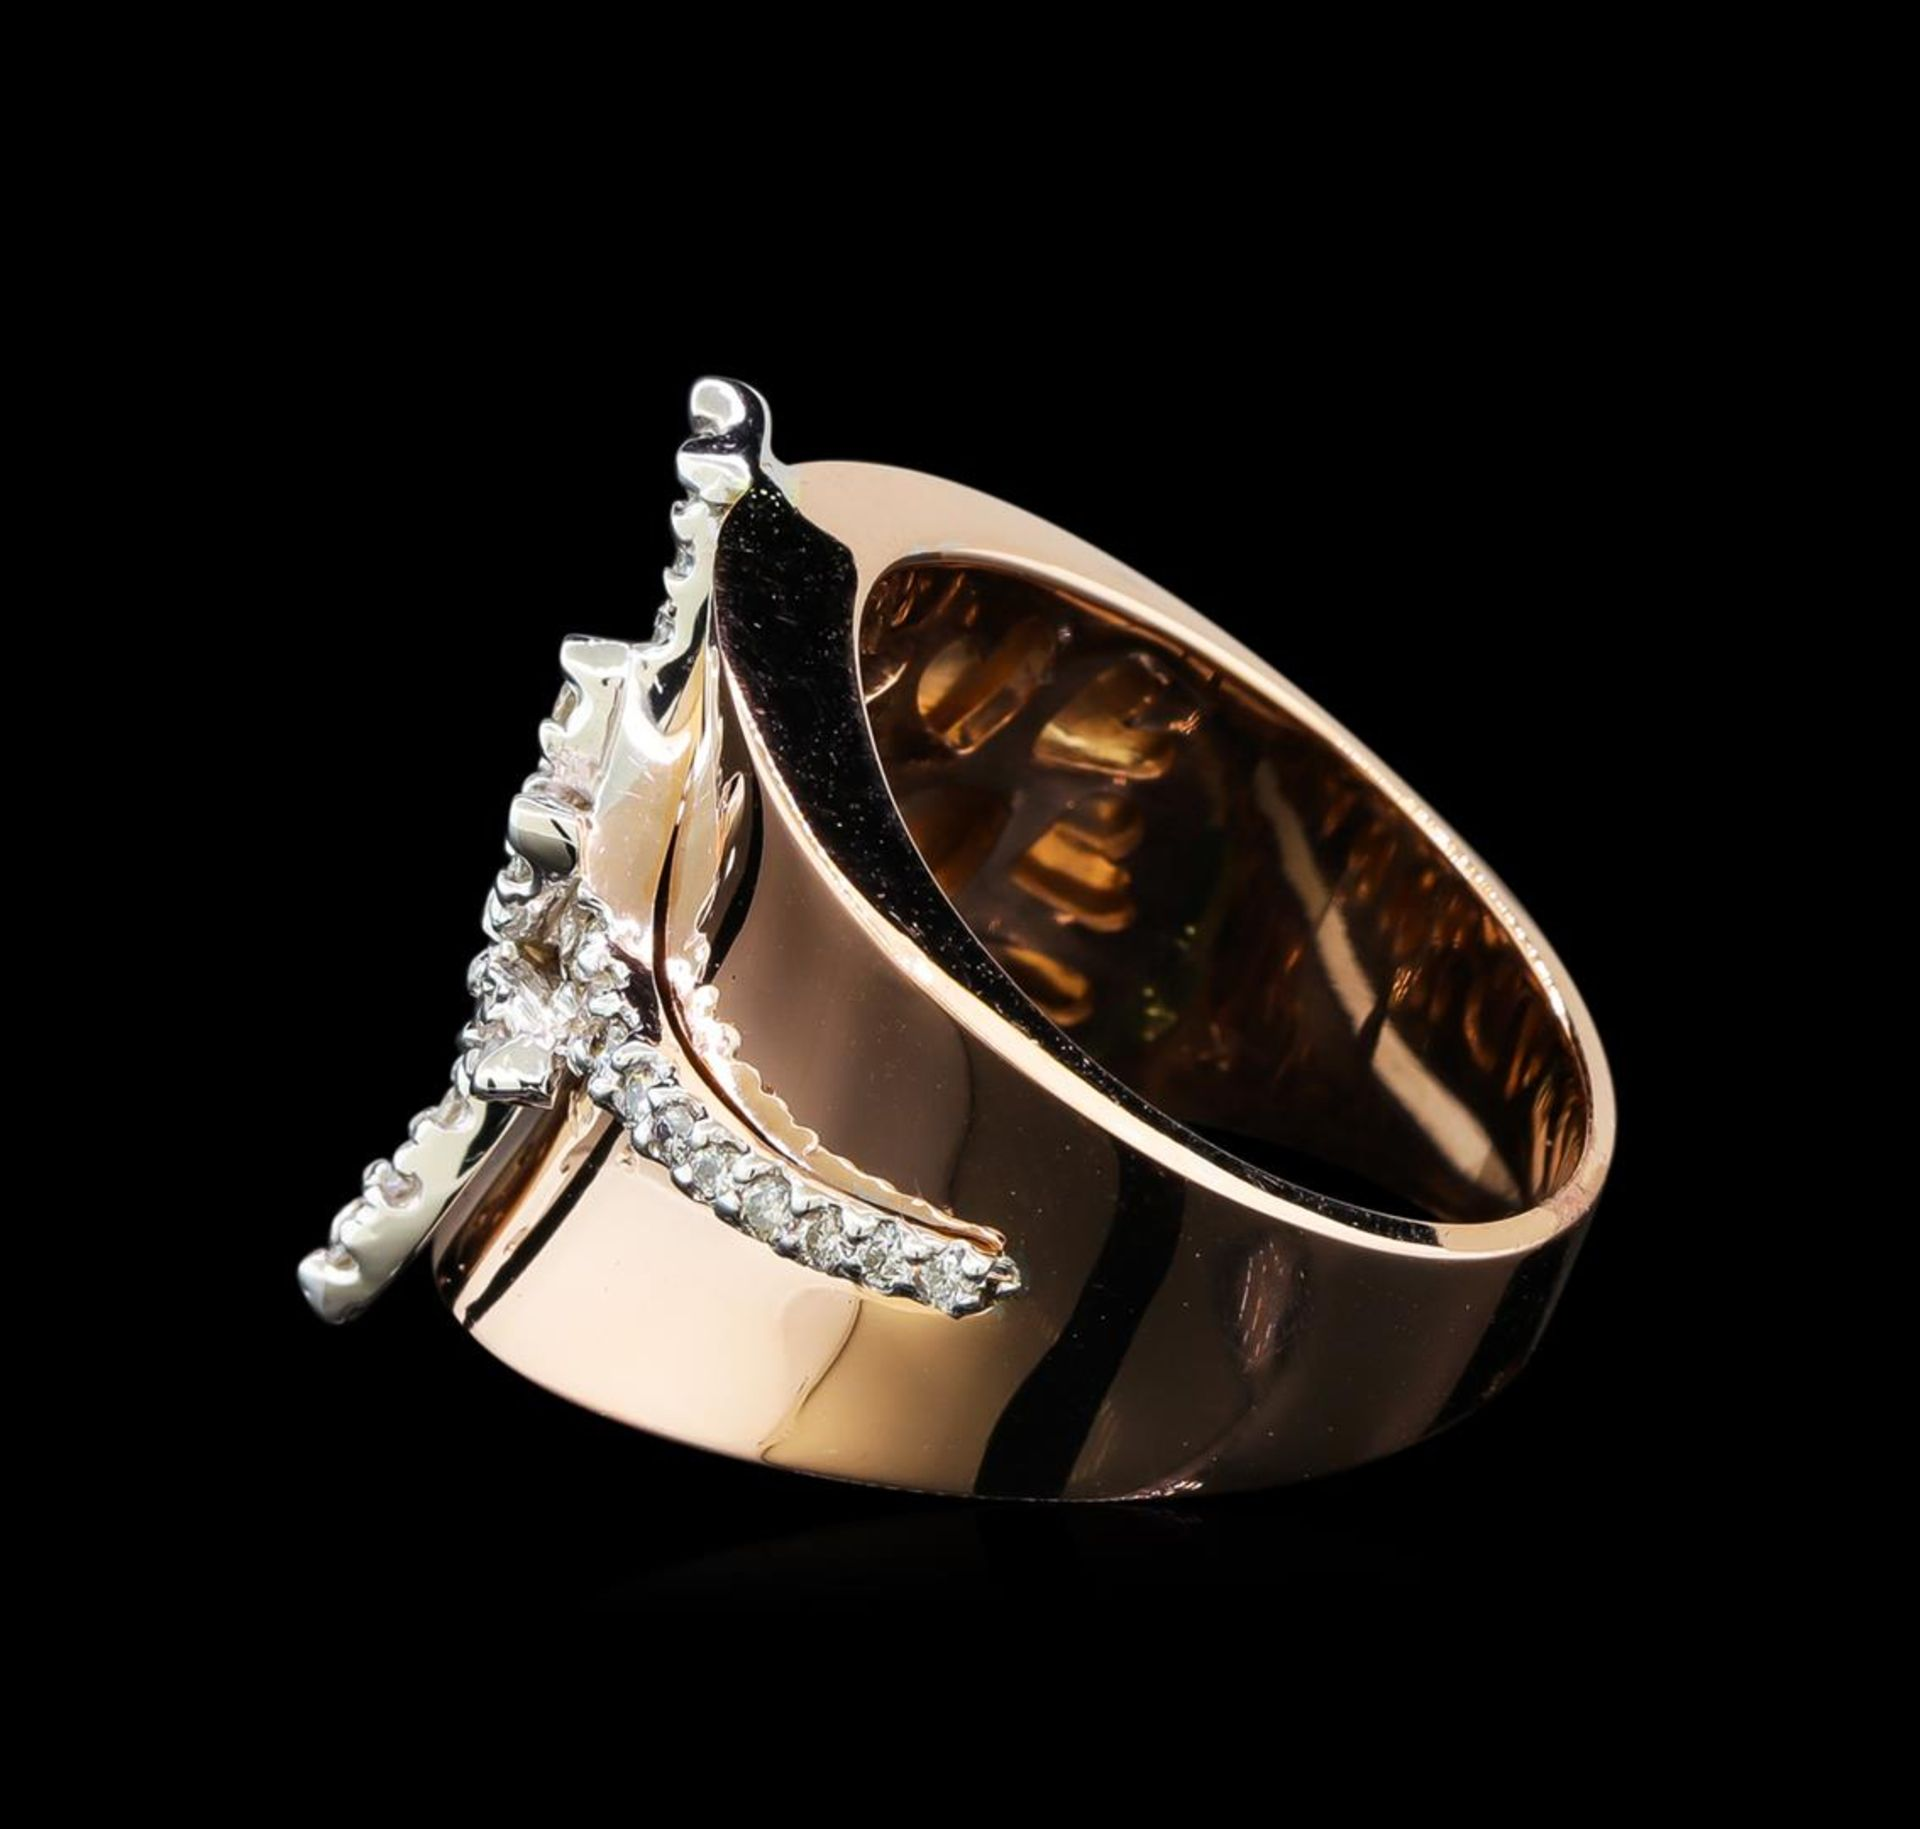 0.45ctw Diamond Ring - 14KT Two Tone Gold - Image 3 of 4